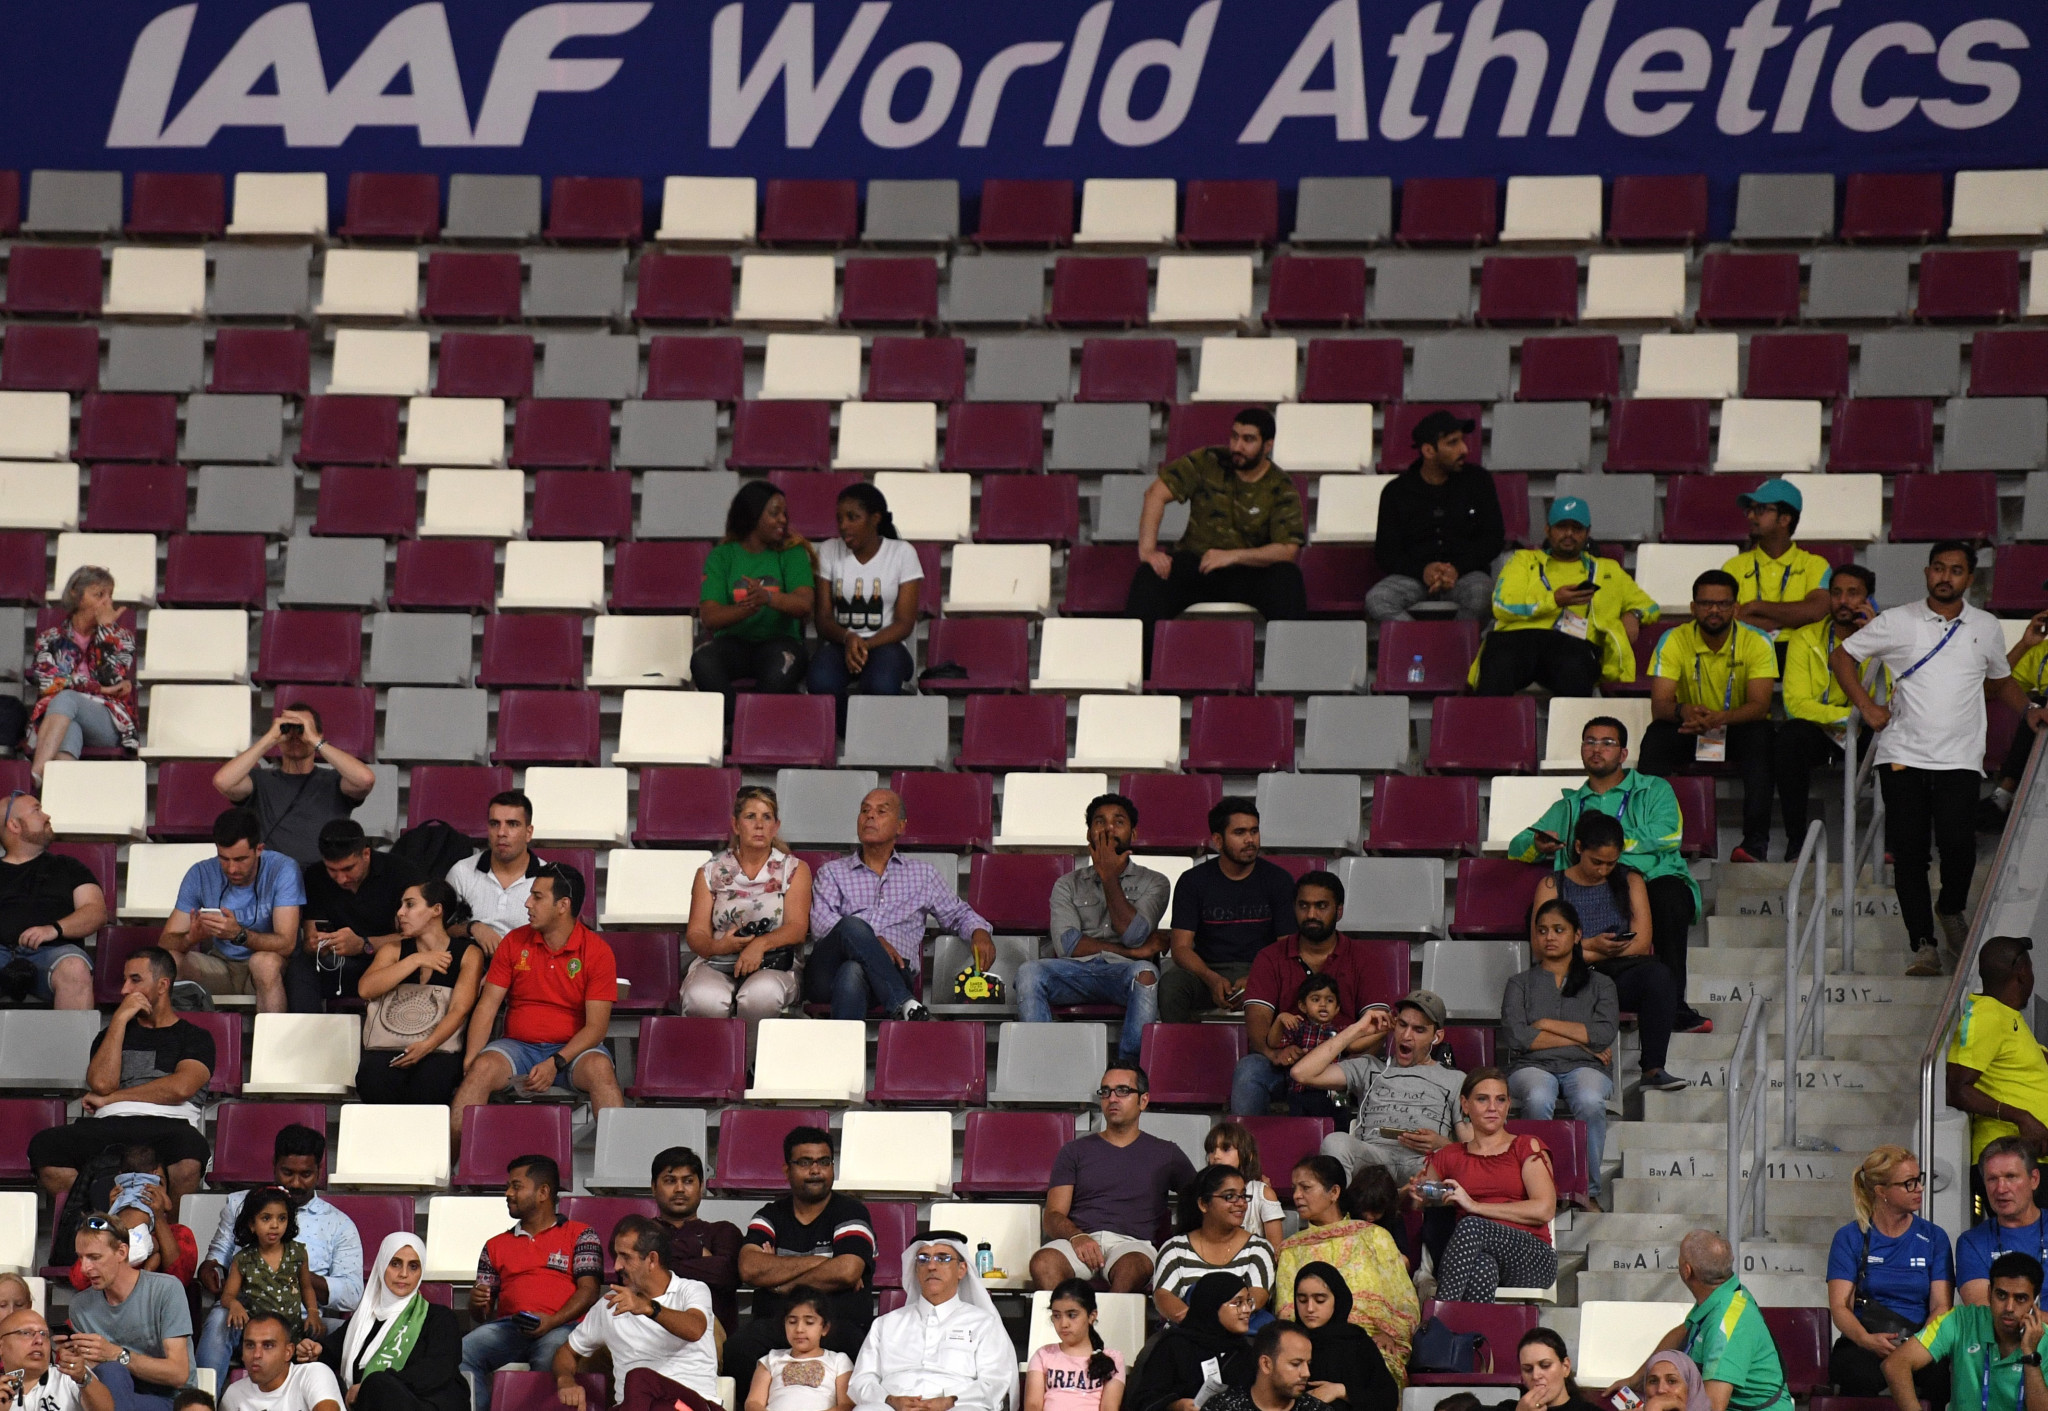 The Khalifa International Stadium has been almost empty for the majority of the IAAF World Championships in Doha ©Getty Images